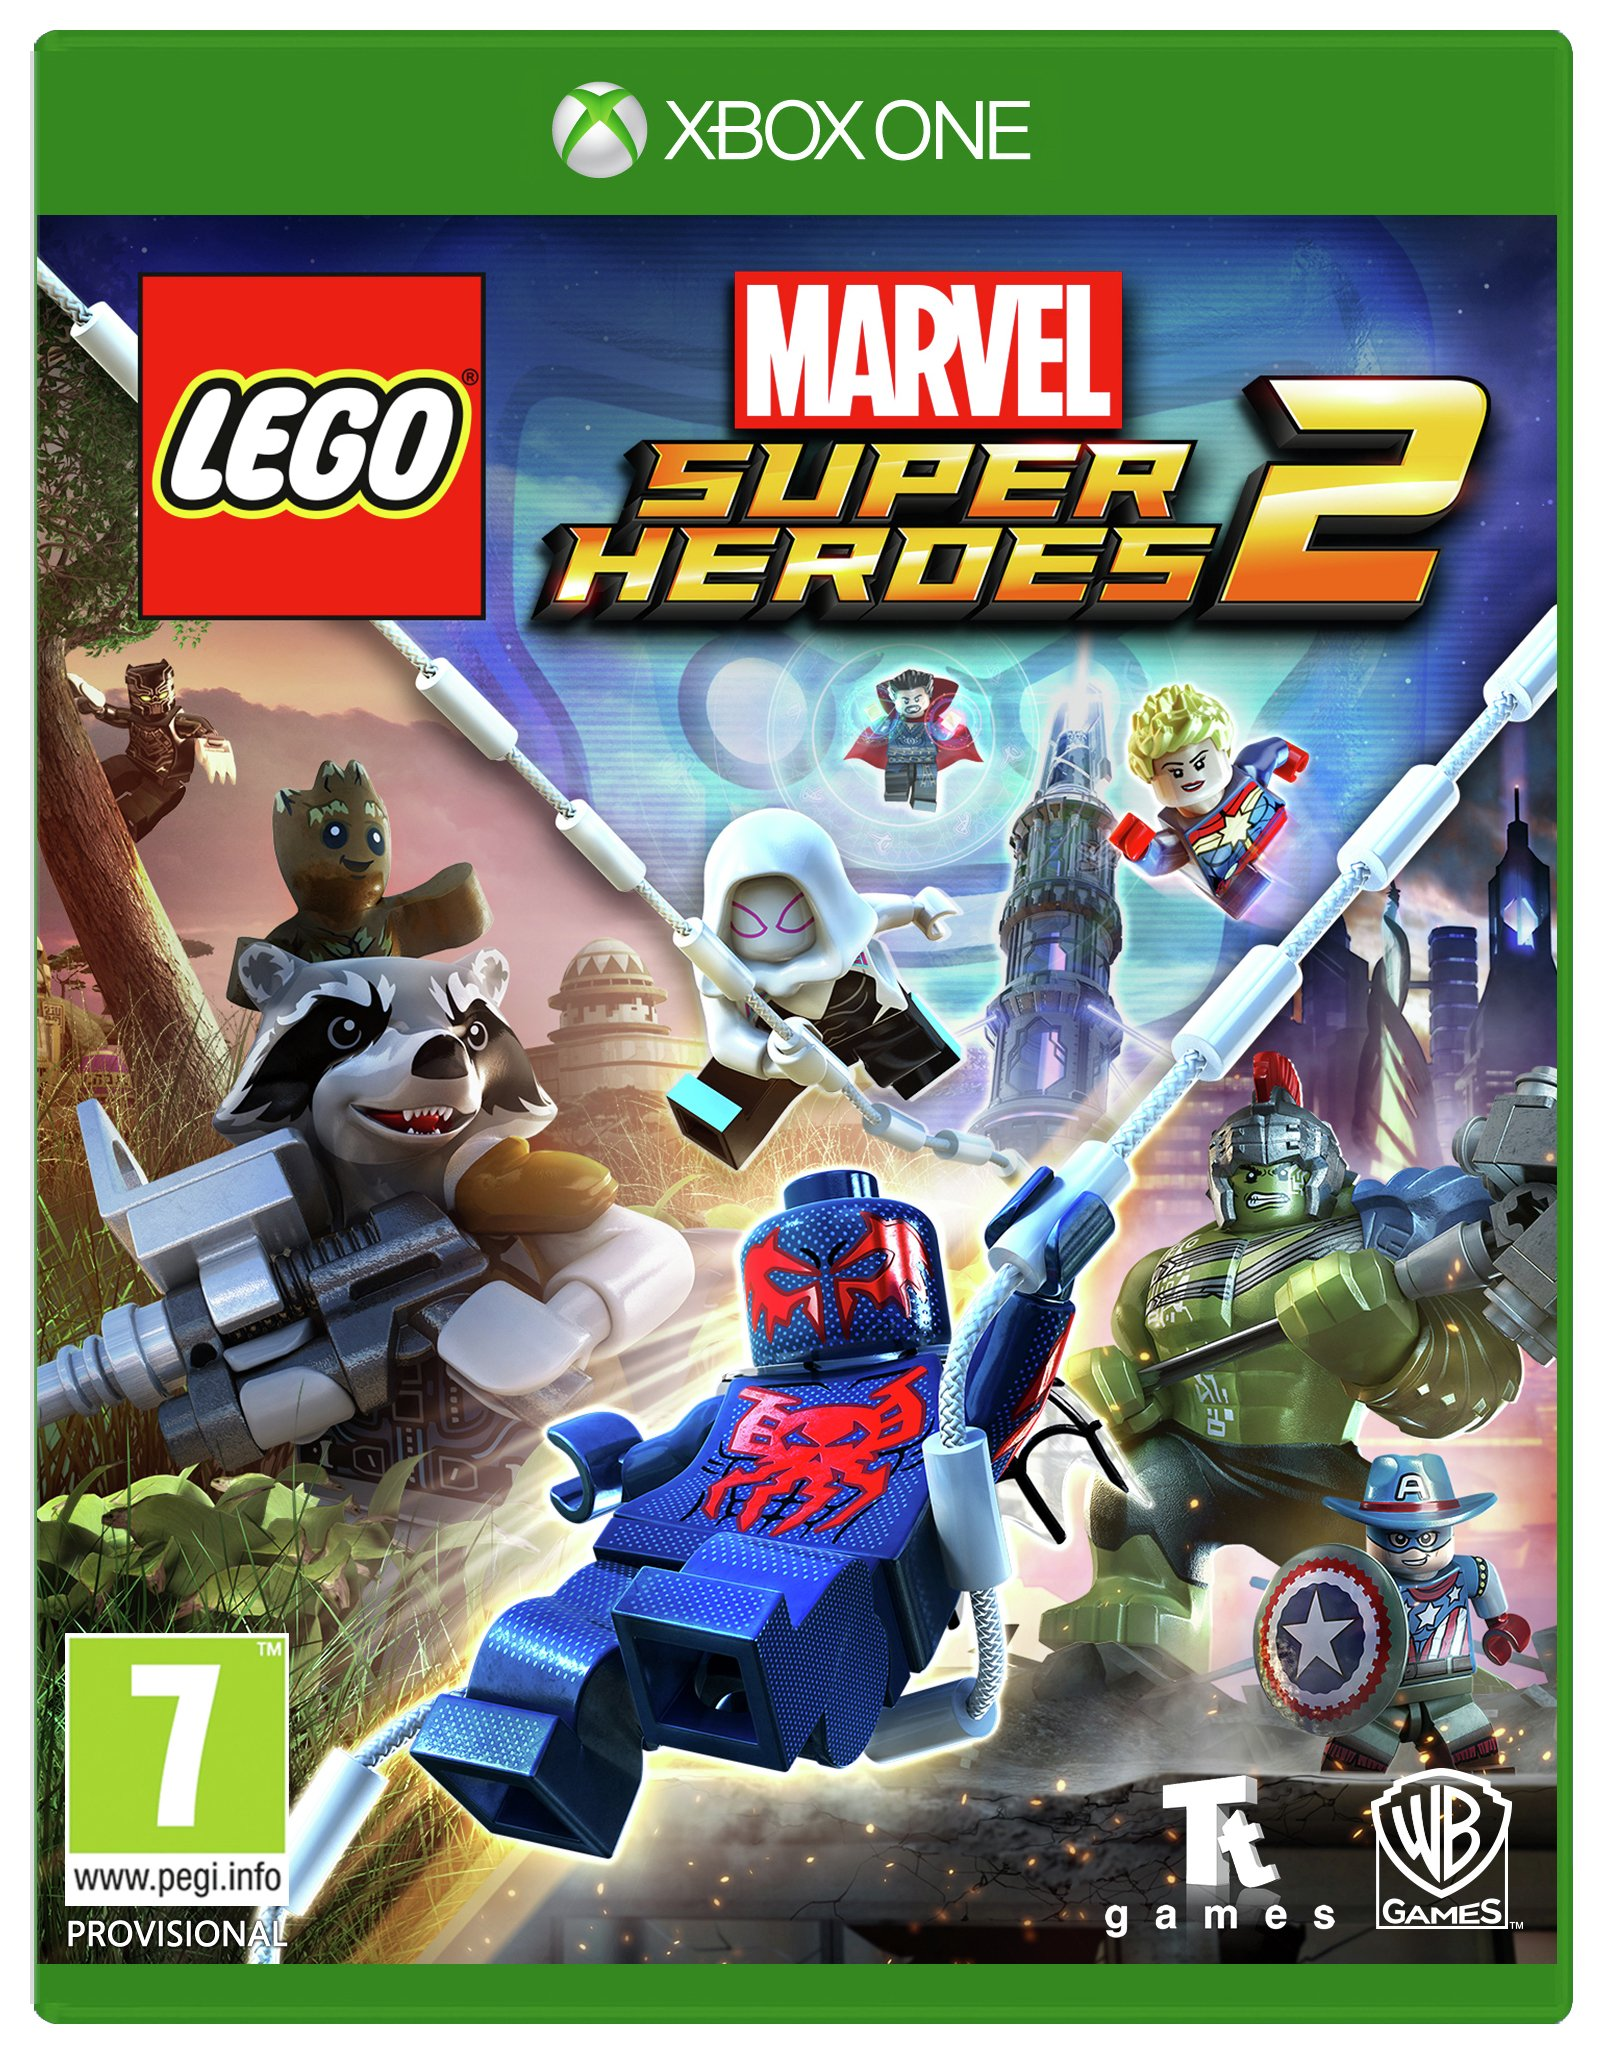 LEGO Marvel Super Heroes 2 Xbox One Game from LEGO